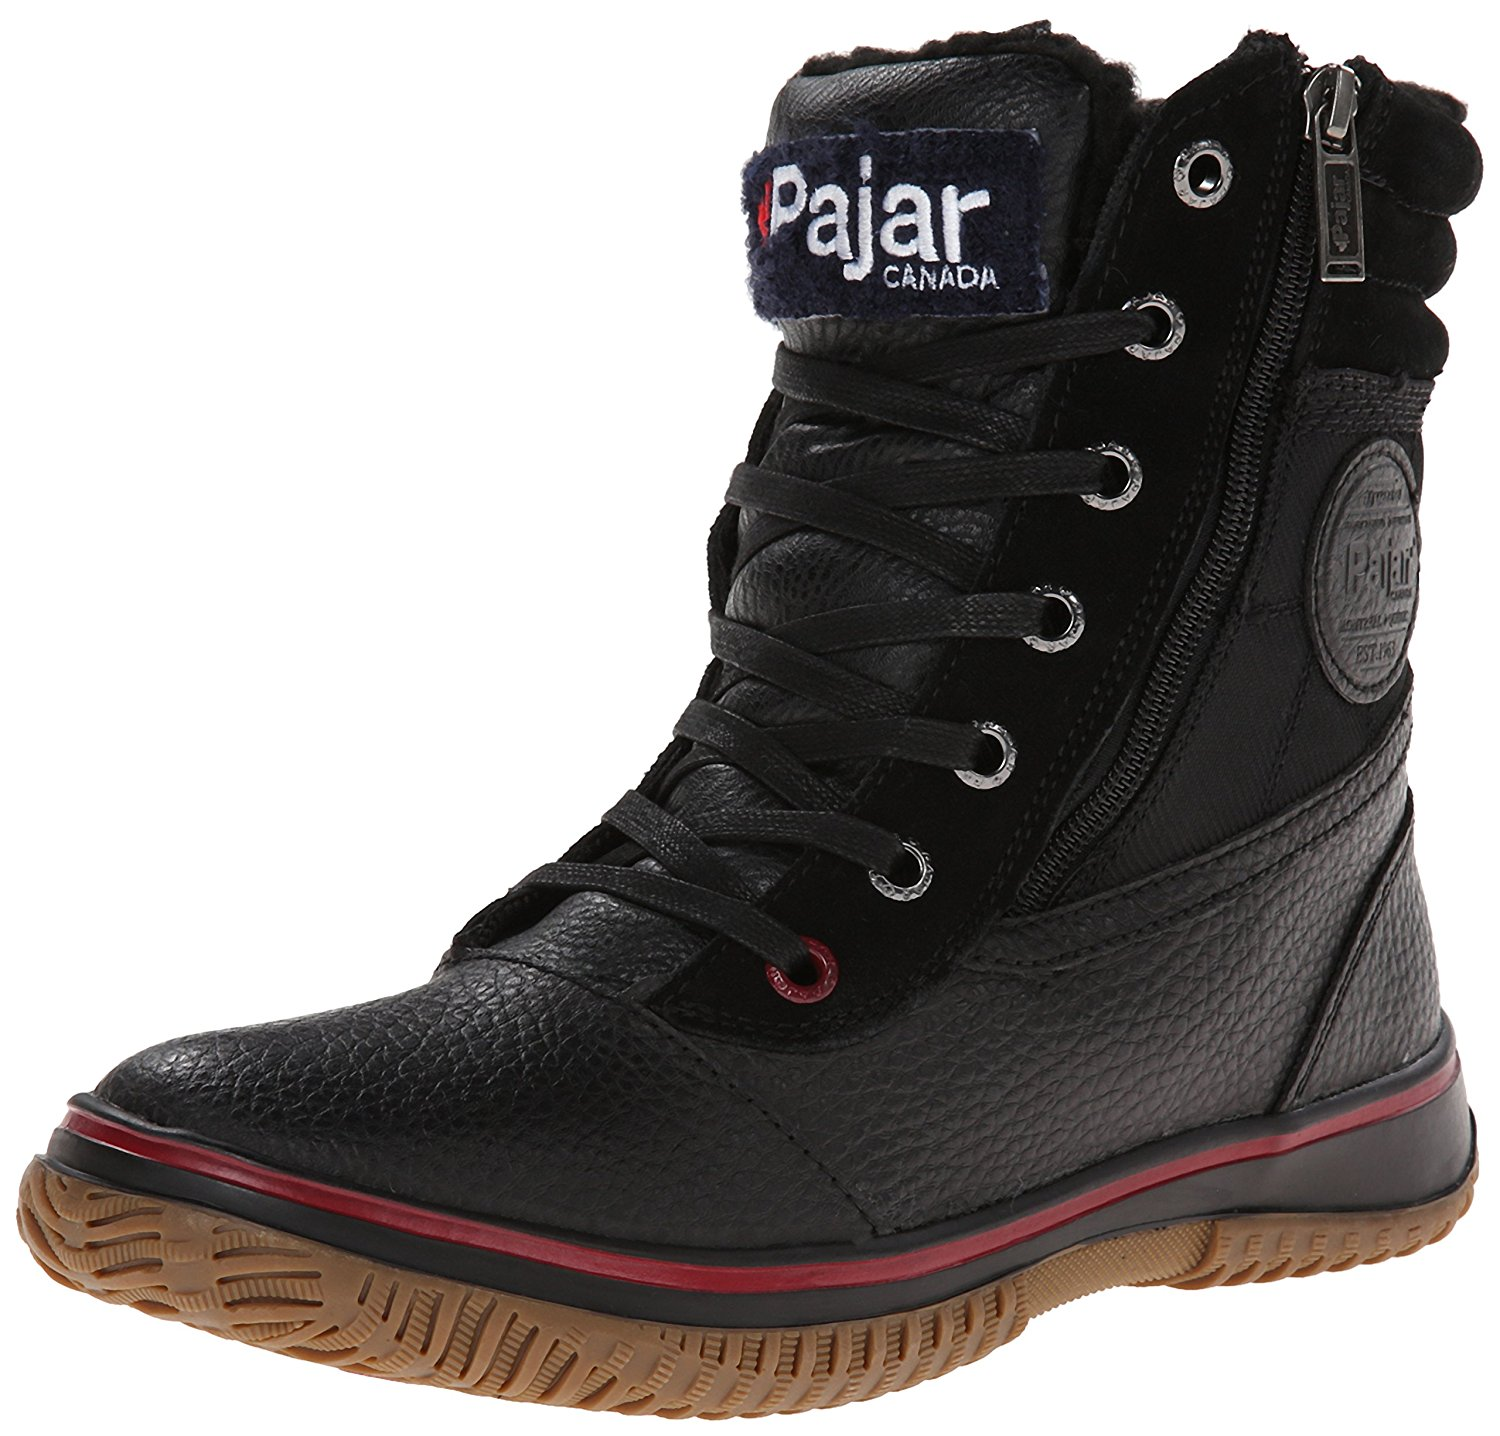 Ultimate Winter wear – Pajar Boots